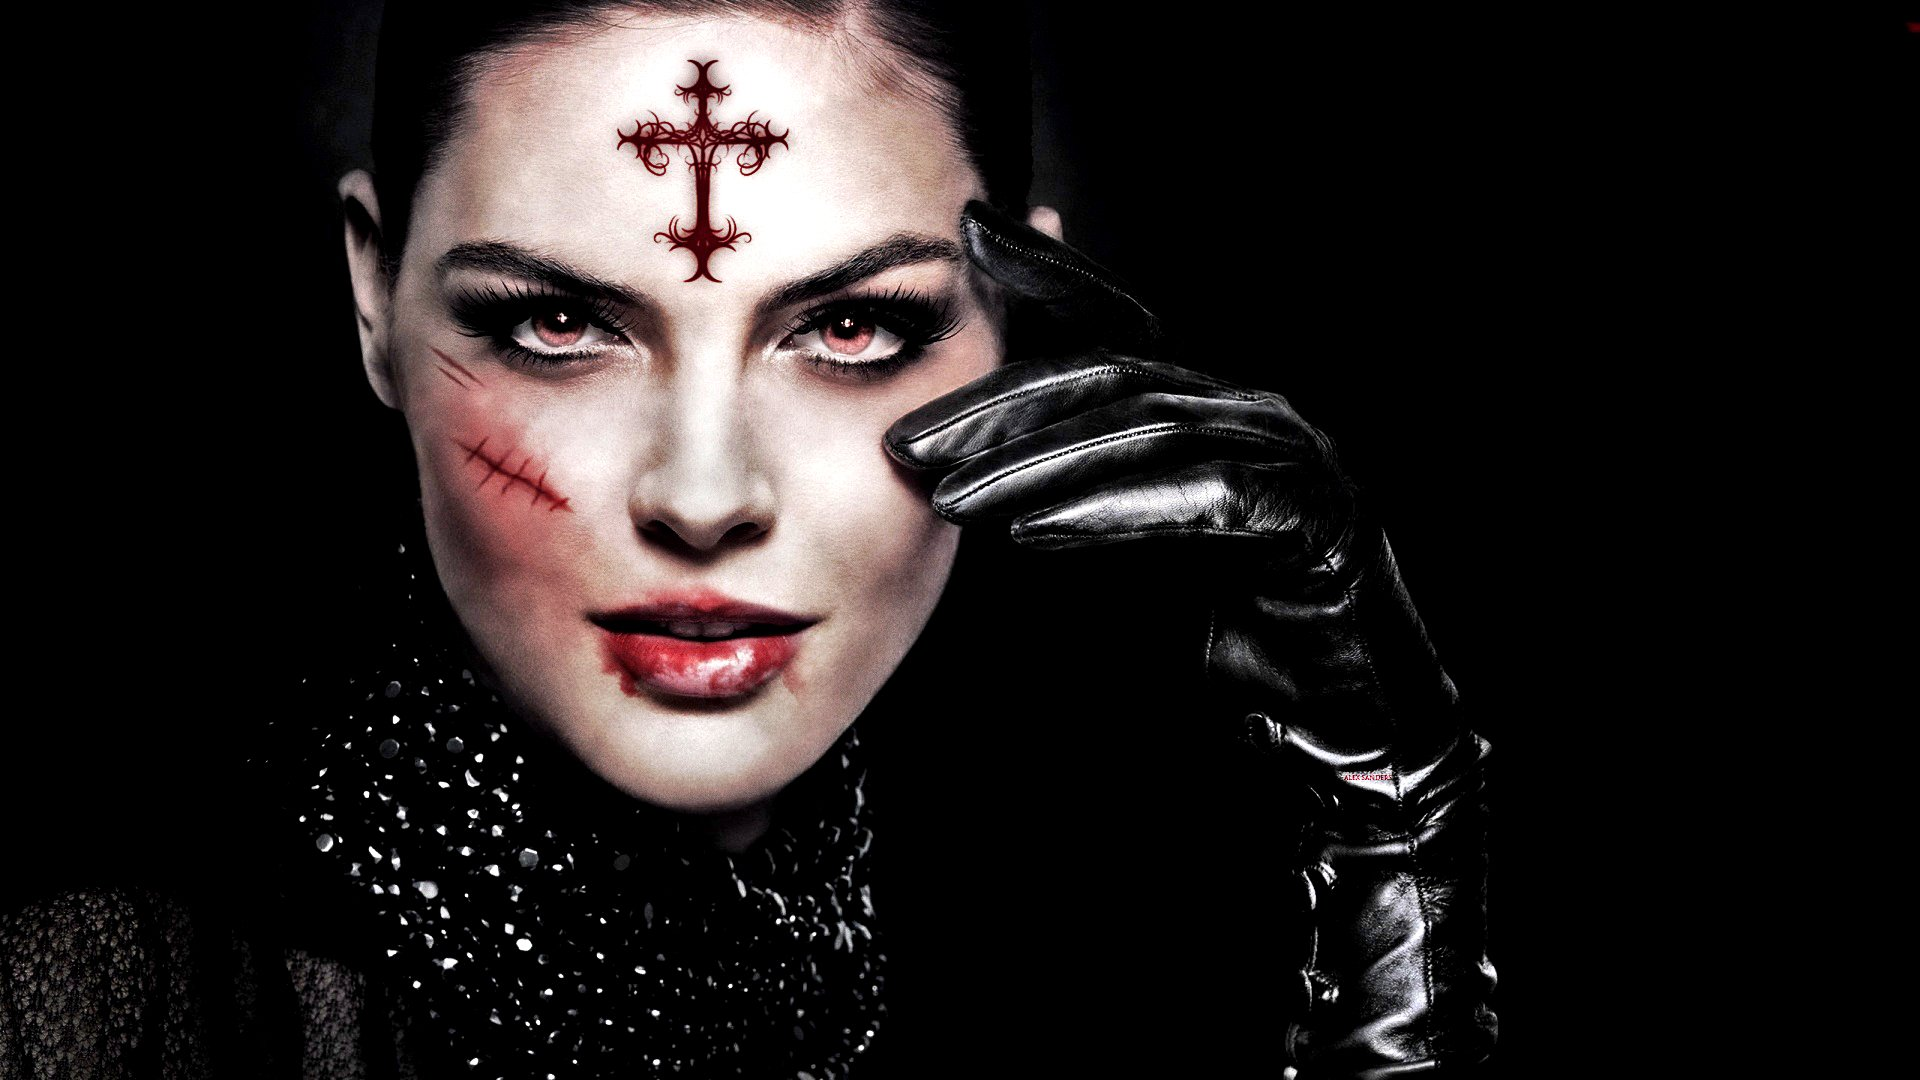 Dark - Occult  Dark Woman Face Blood Fantasy Gothic Scar Wallpaper